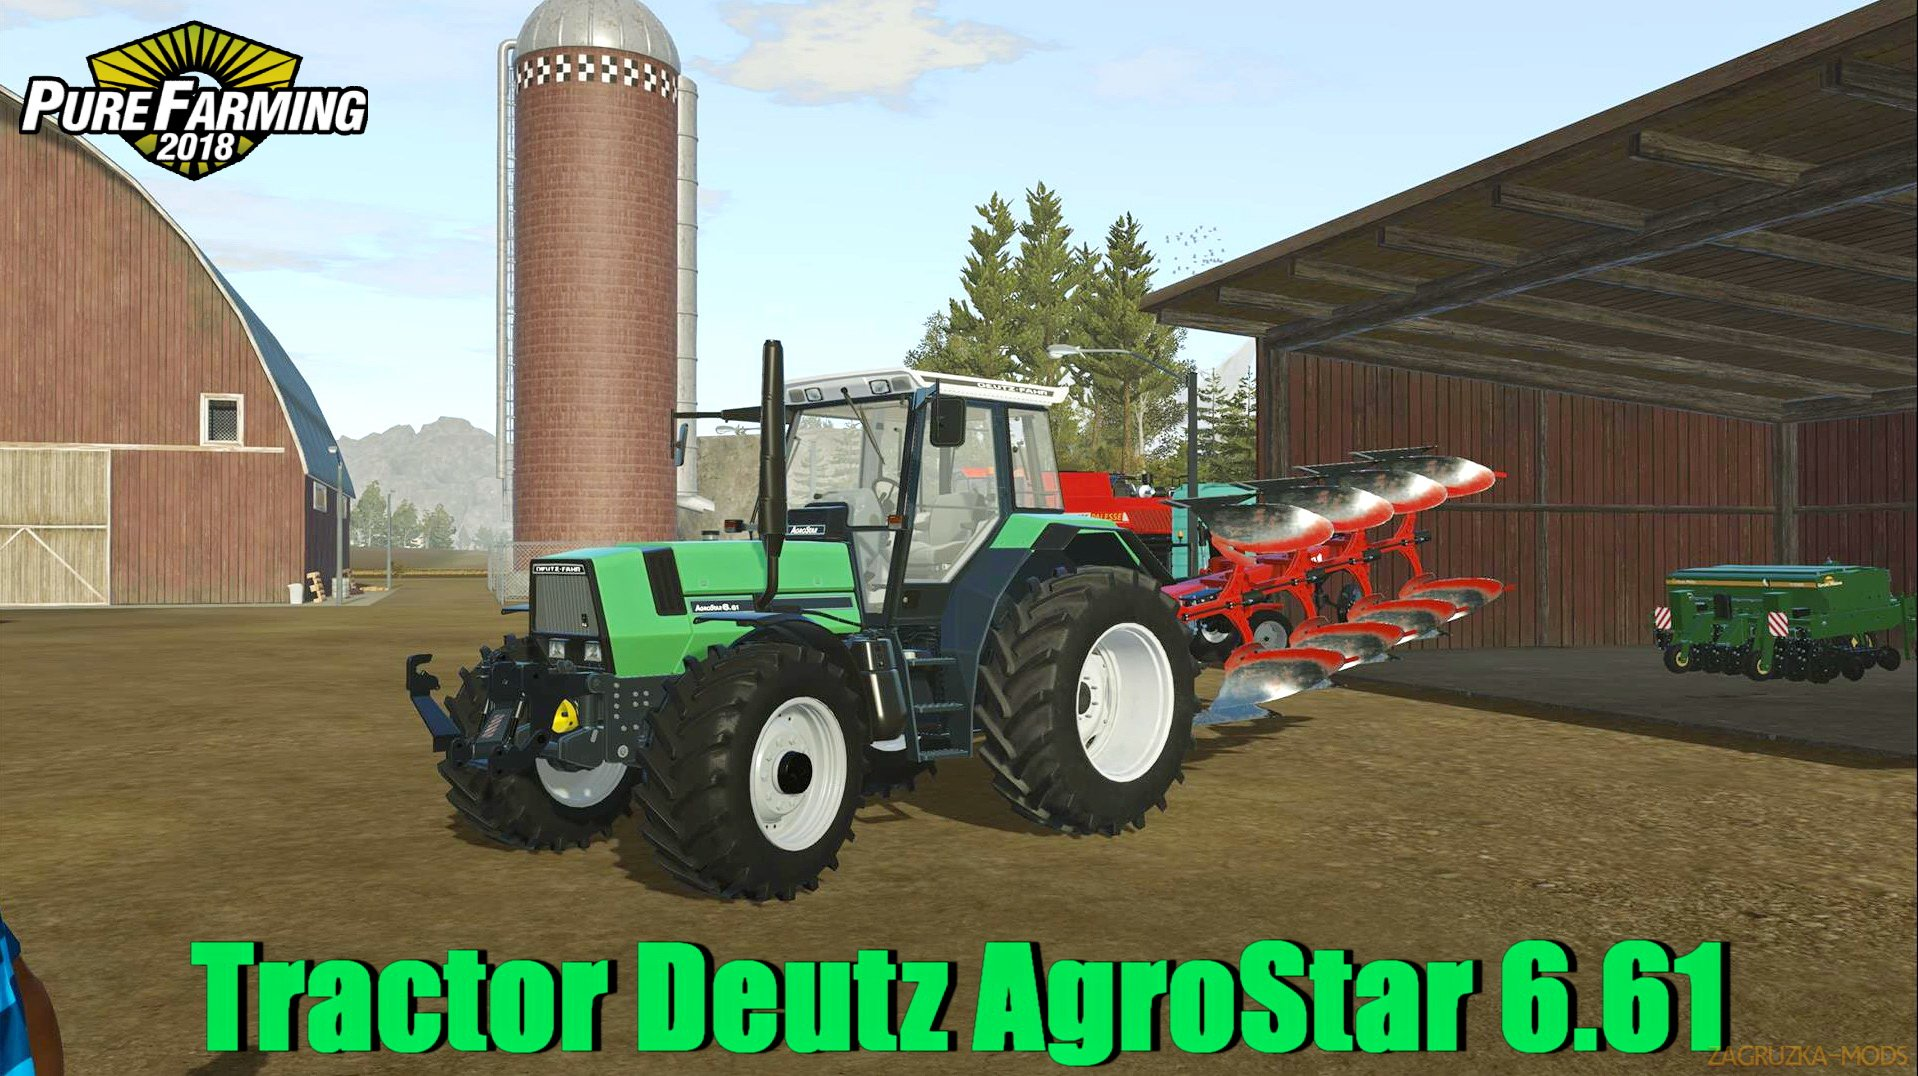 Tractor Deutz AgroStar 6.61 v1.0 for Pure Farming 2018